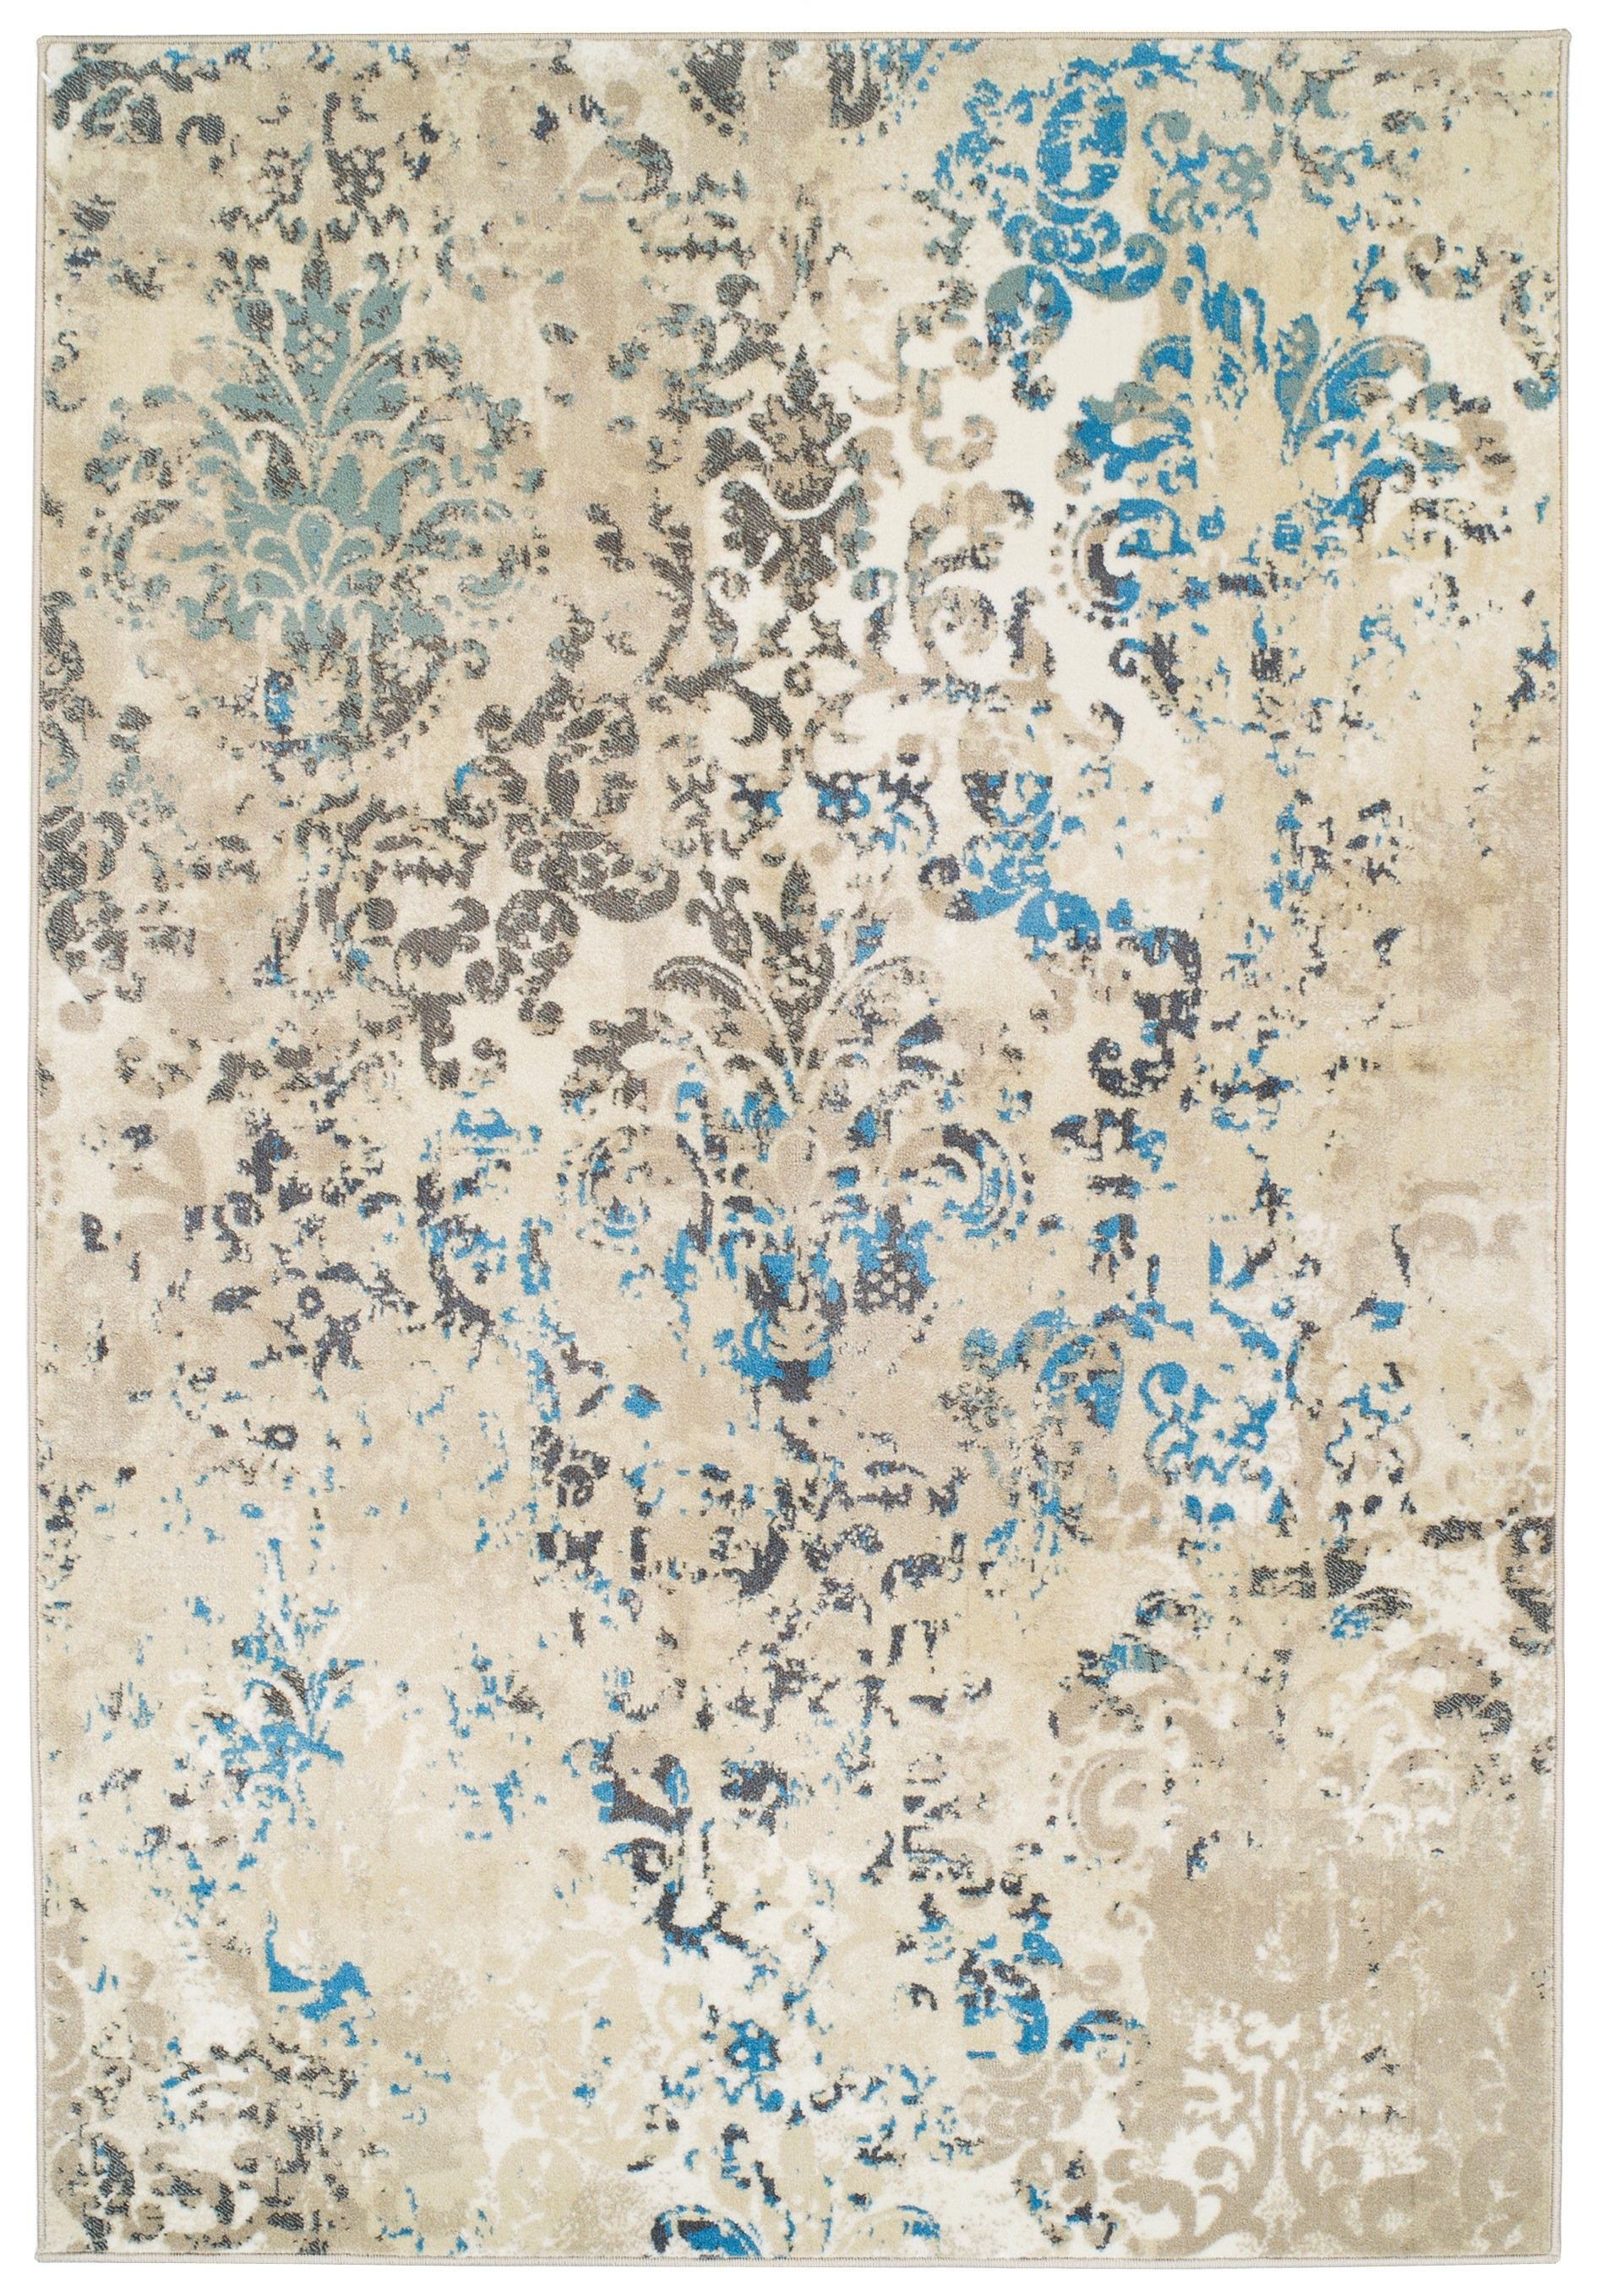 Premium High Quality Rug Large Rugs For Dining Rooms 8 By 11 Blue Beige Brown Cream